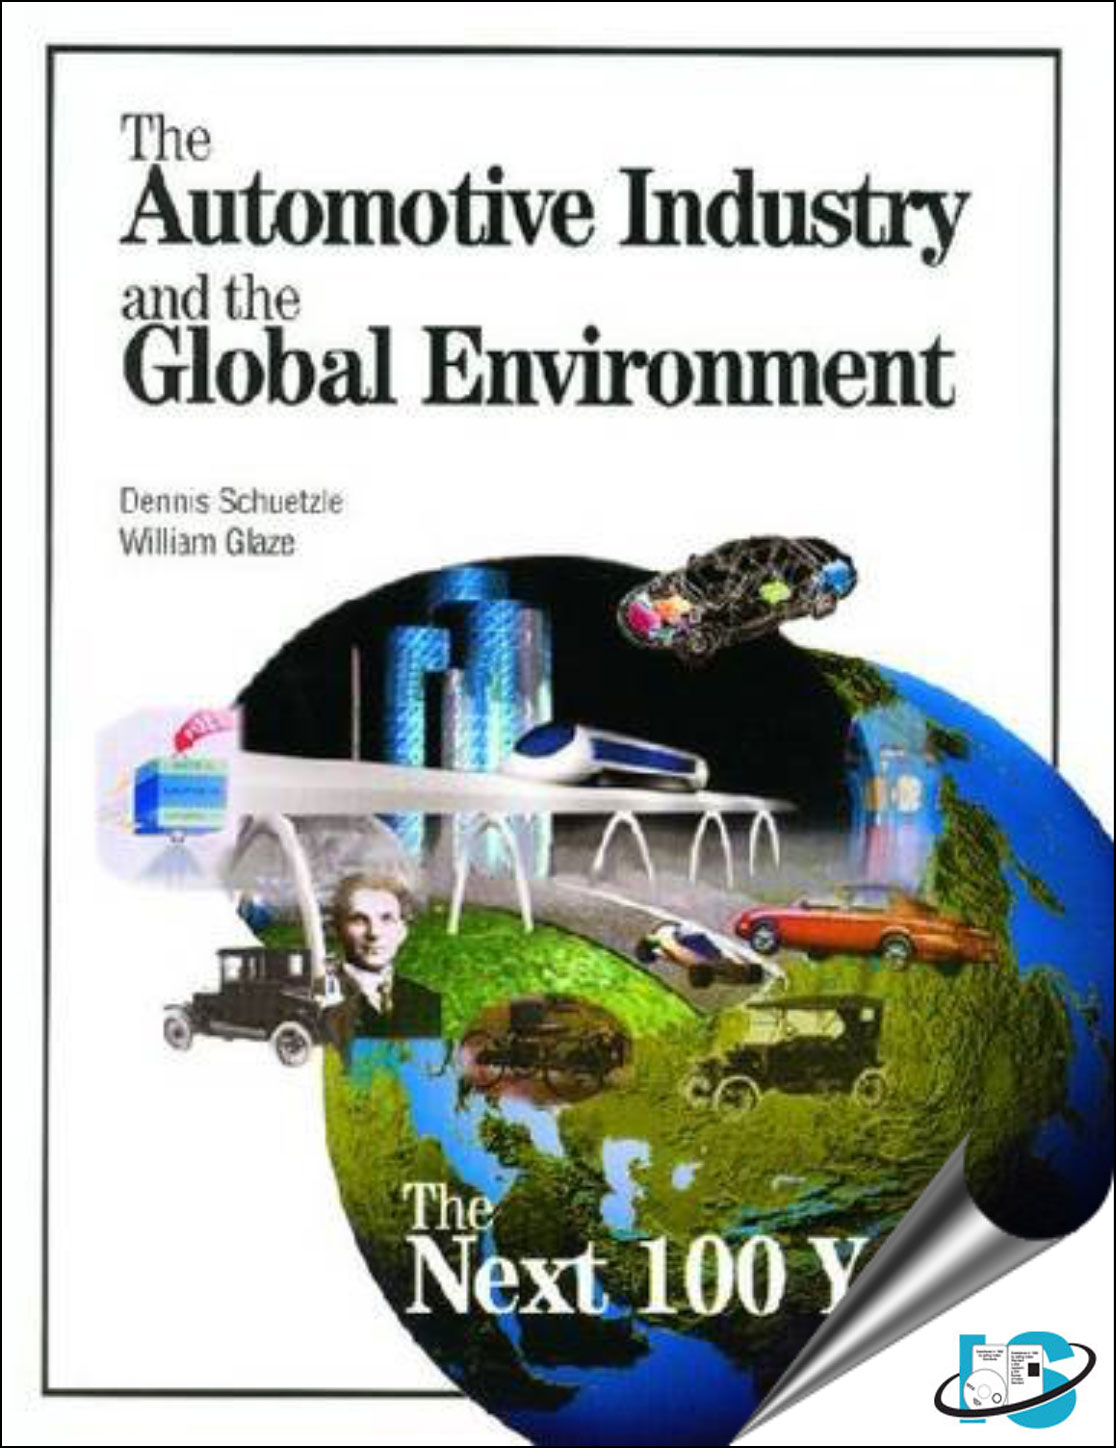 globalization of the automotive industry essay